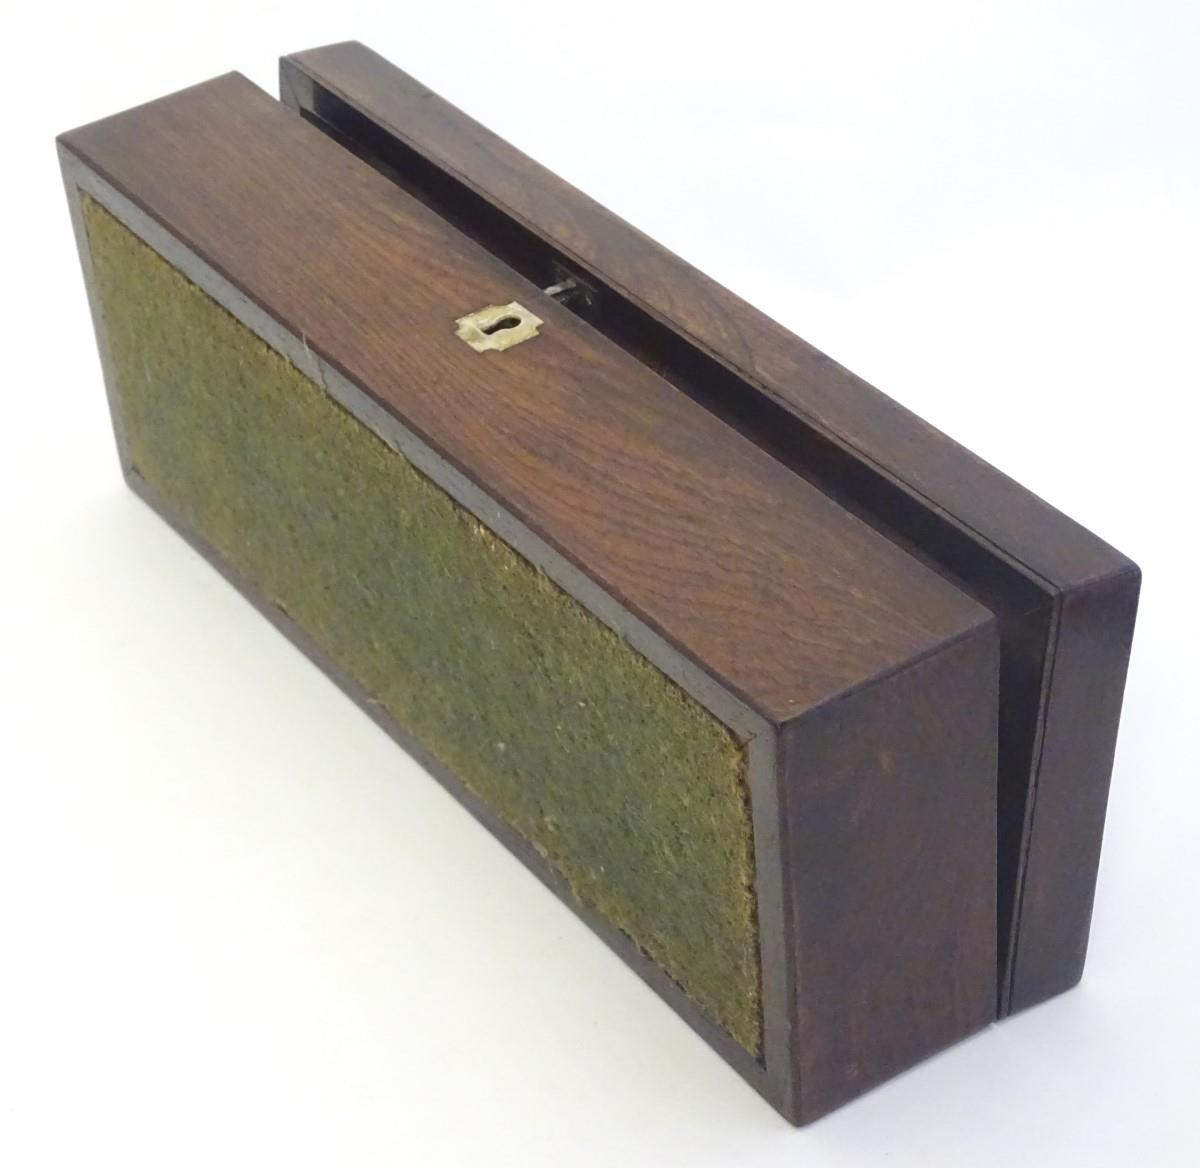 """Lot 773 - A 19thC mahogany glove box of rectangular form with inlaid mother of pearl detail. Approx. 3"""" x 11"""